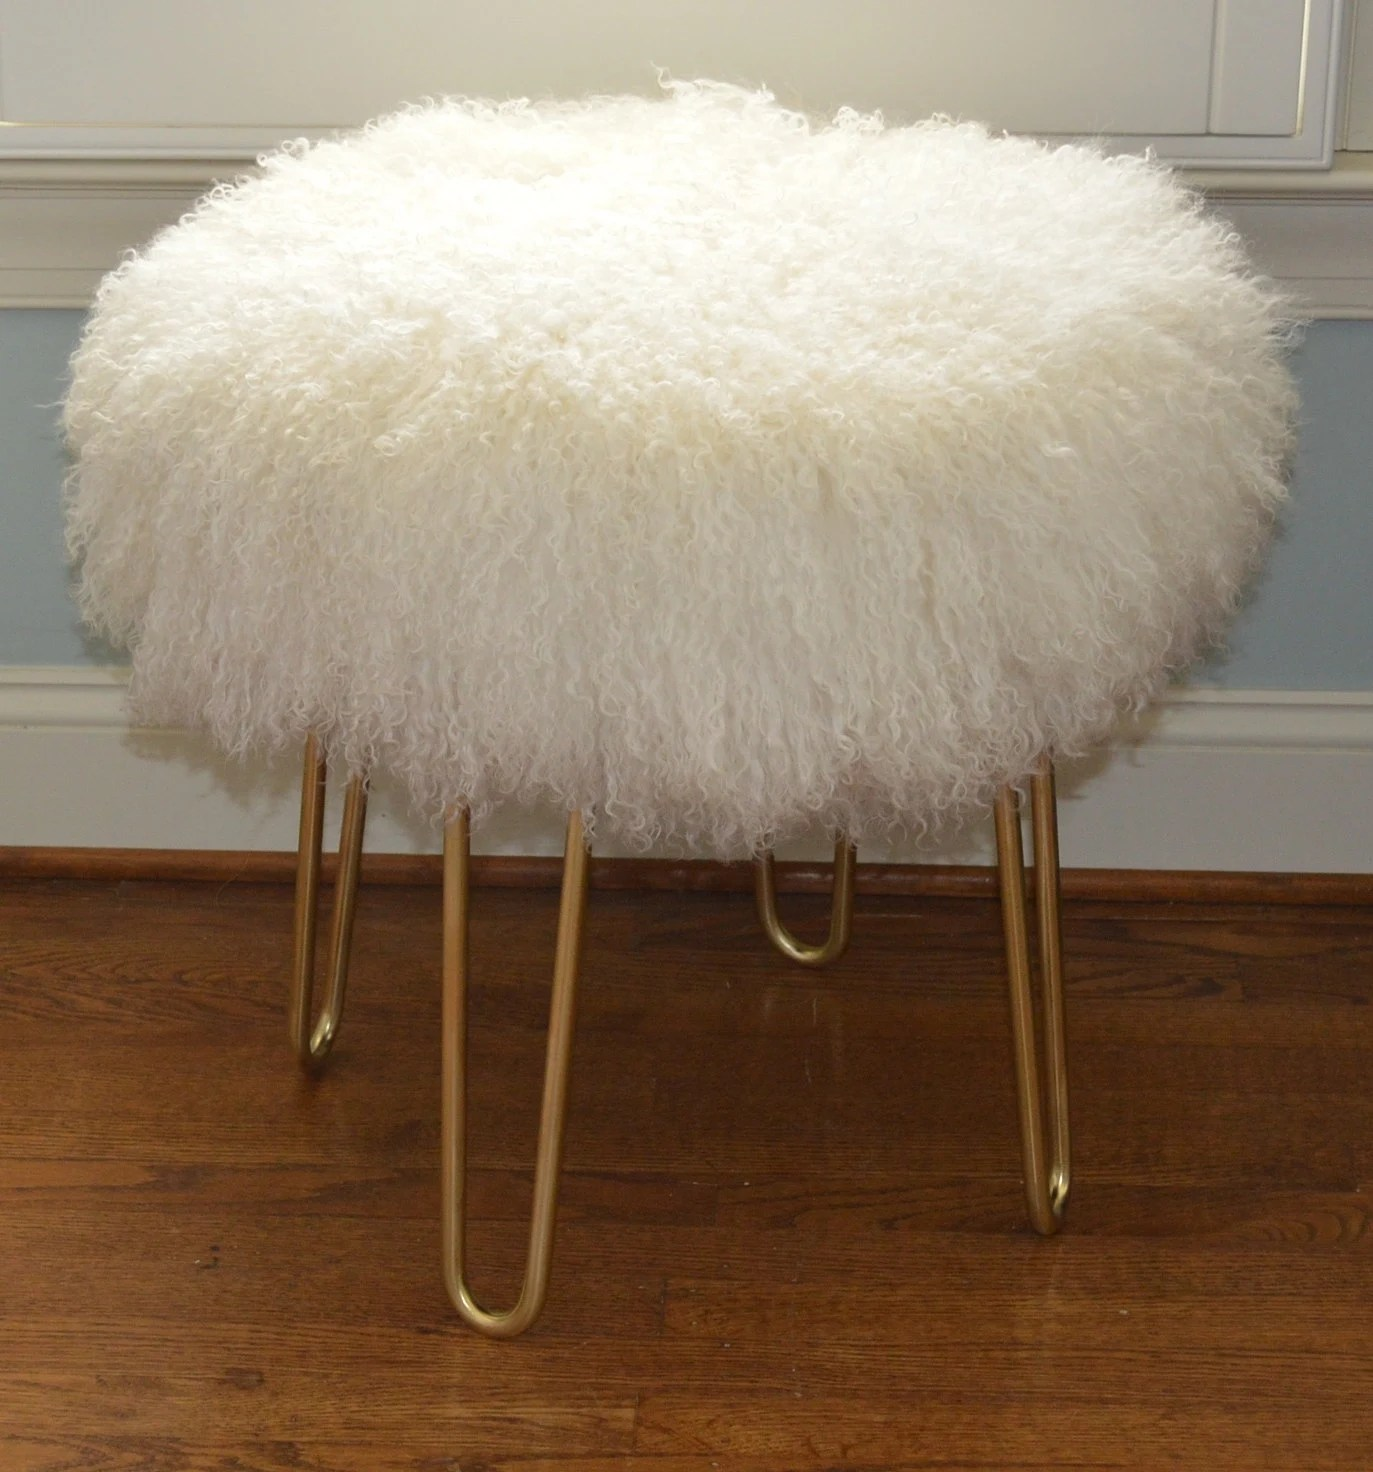 vanity chair white fur posture and ottoman set real natural mongolian lamb stool tibet bench brass